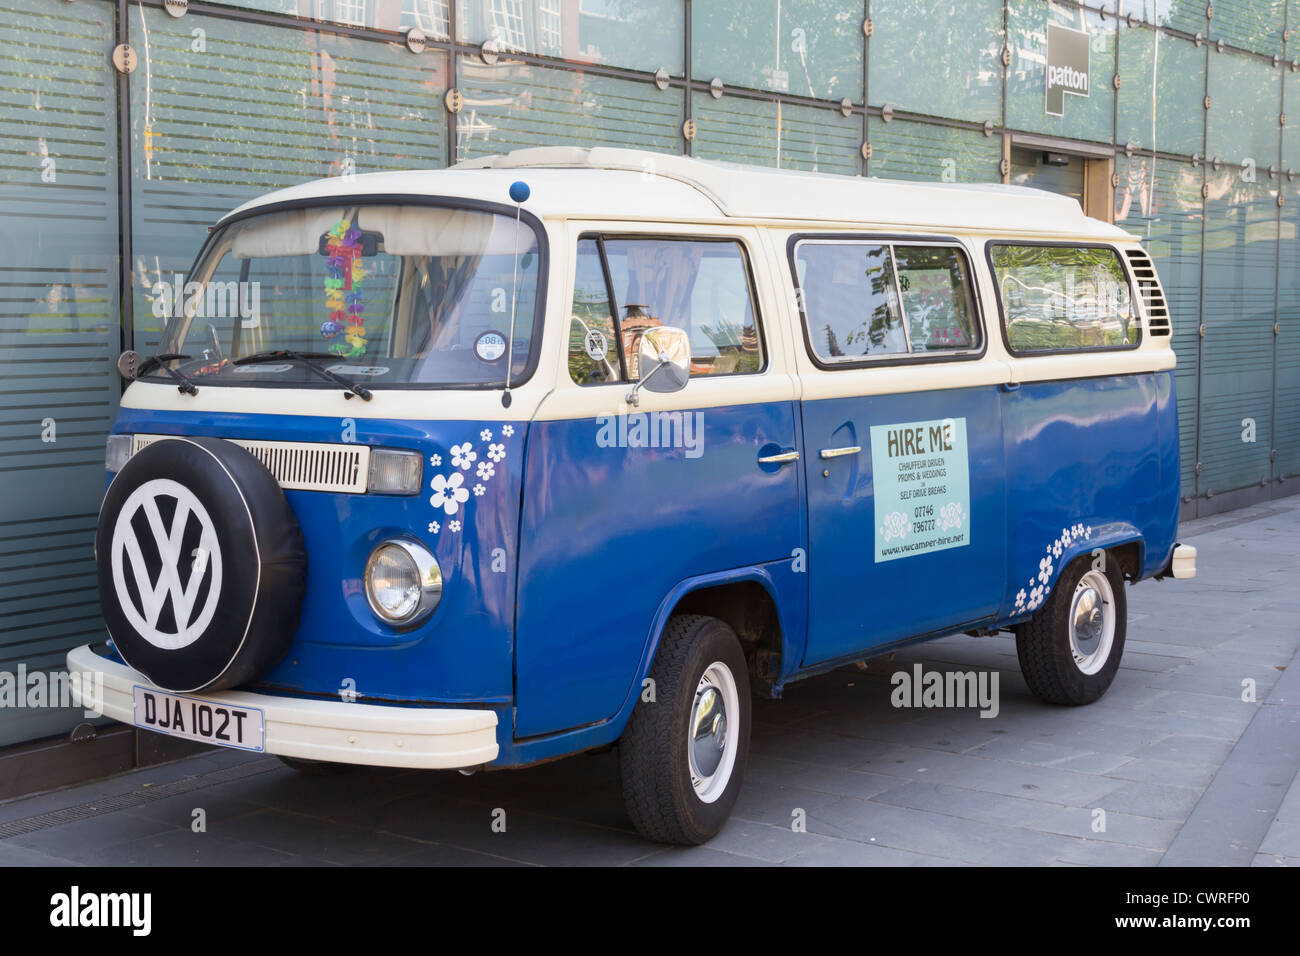 Blue Classic Car Volkswagen Camper Van Available For Hire Parked In